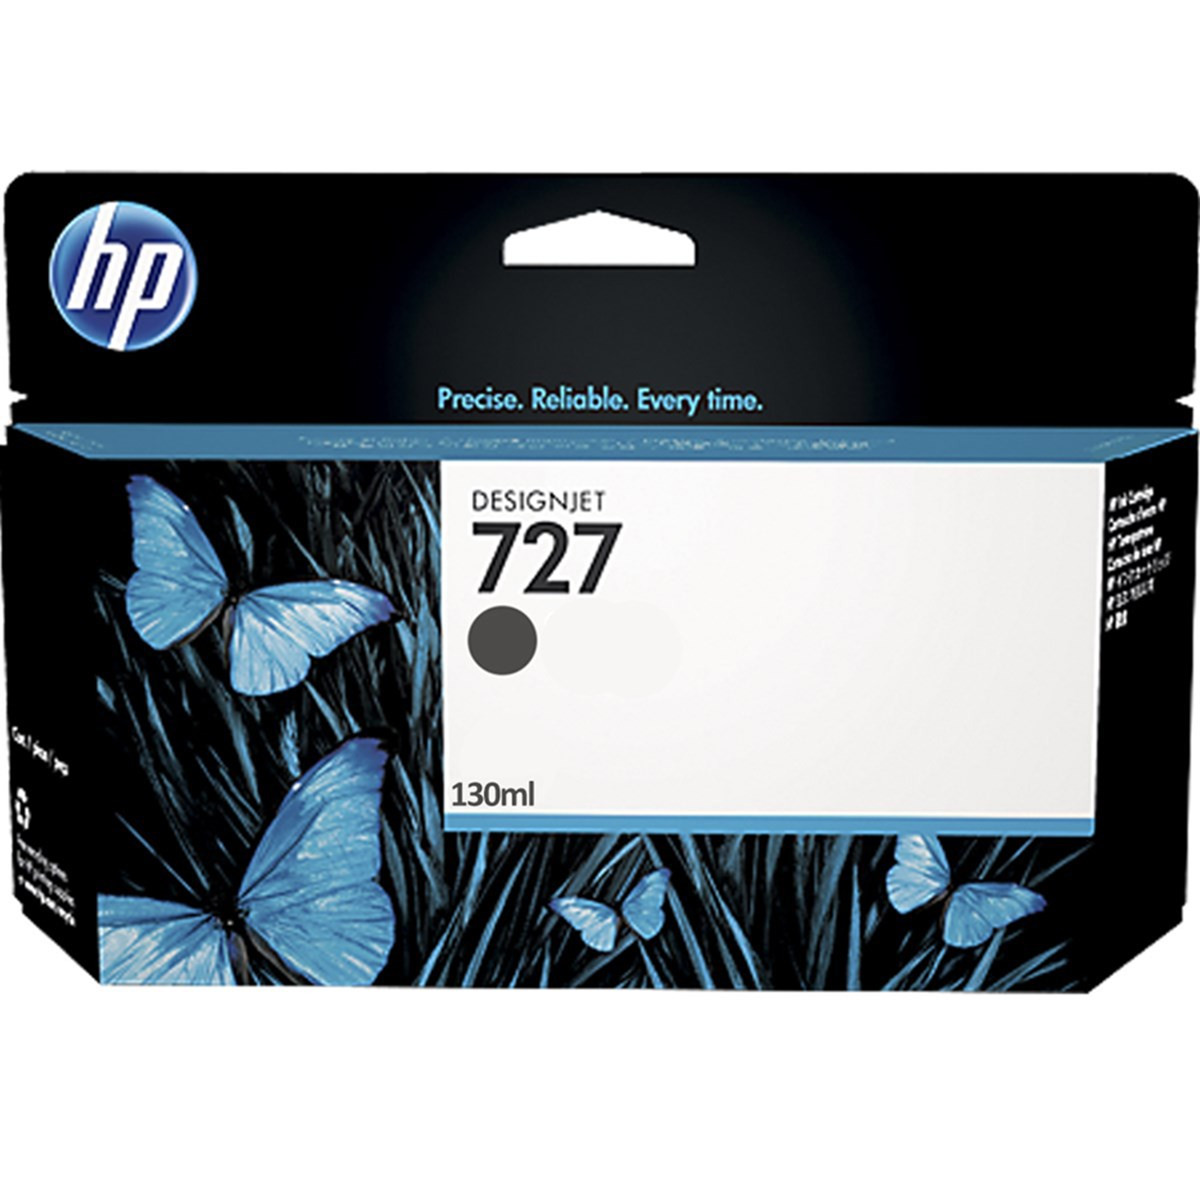 Cartucho de Tinta para Plotter HP 727 B3P22A Preto Fosco | T1500 T920 T930 T1530 | Original 130ml